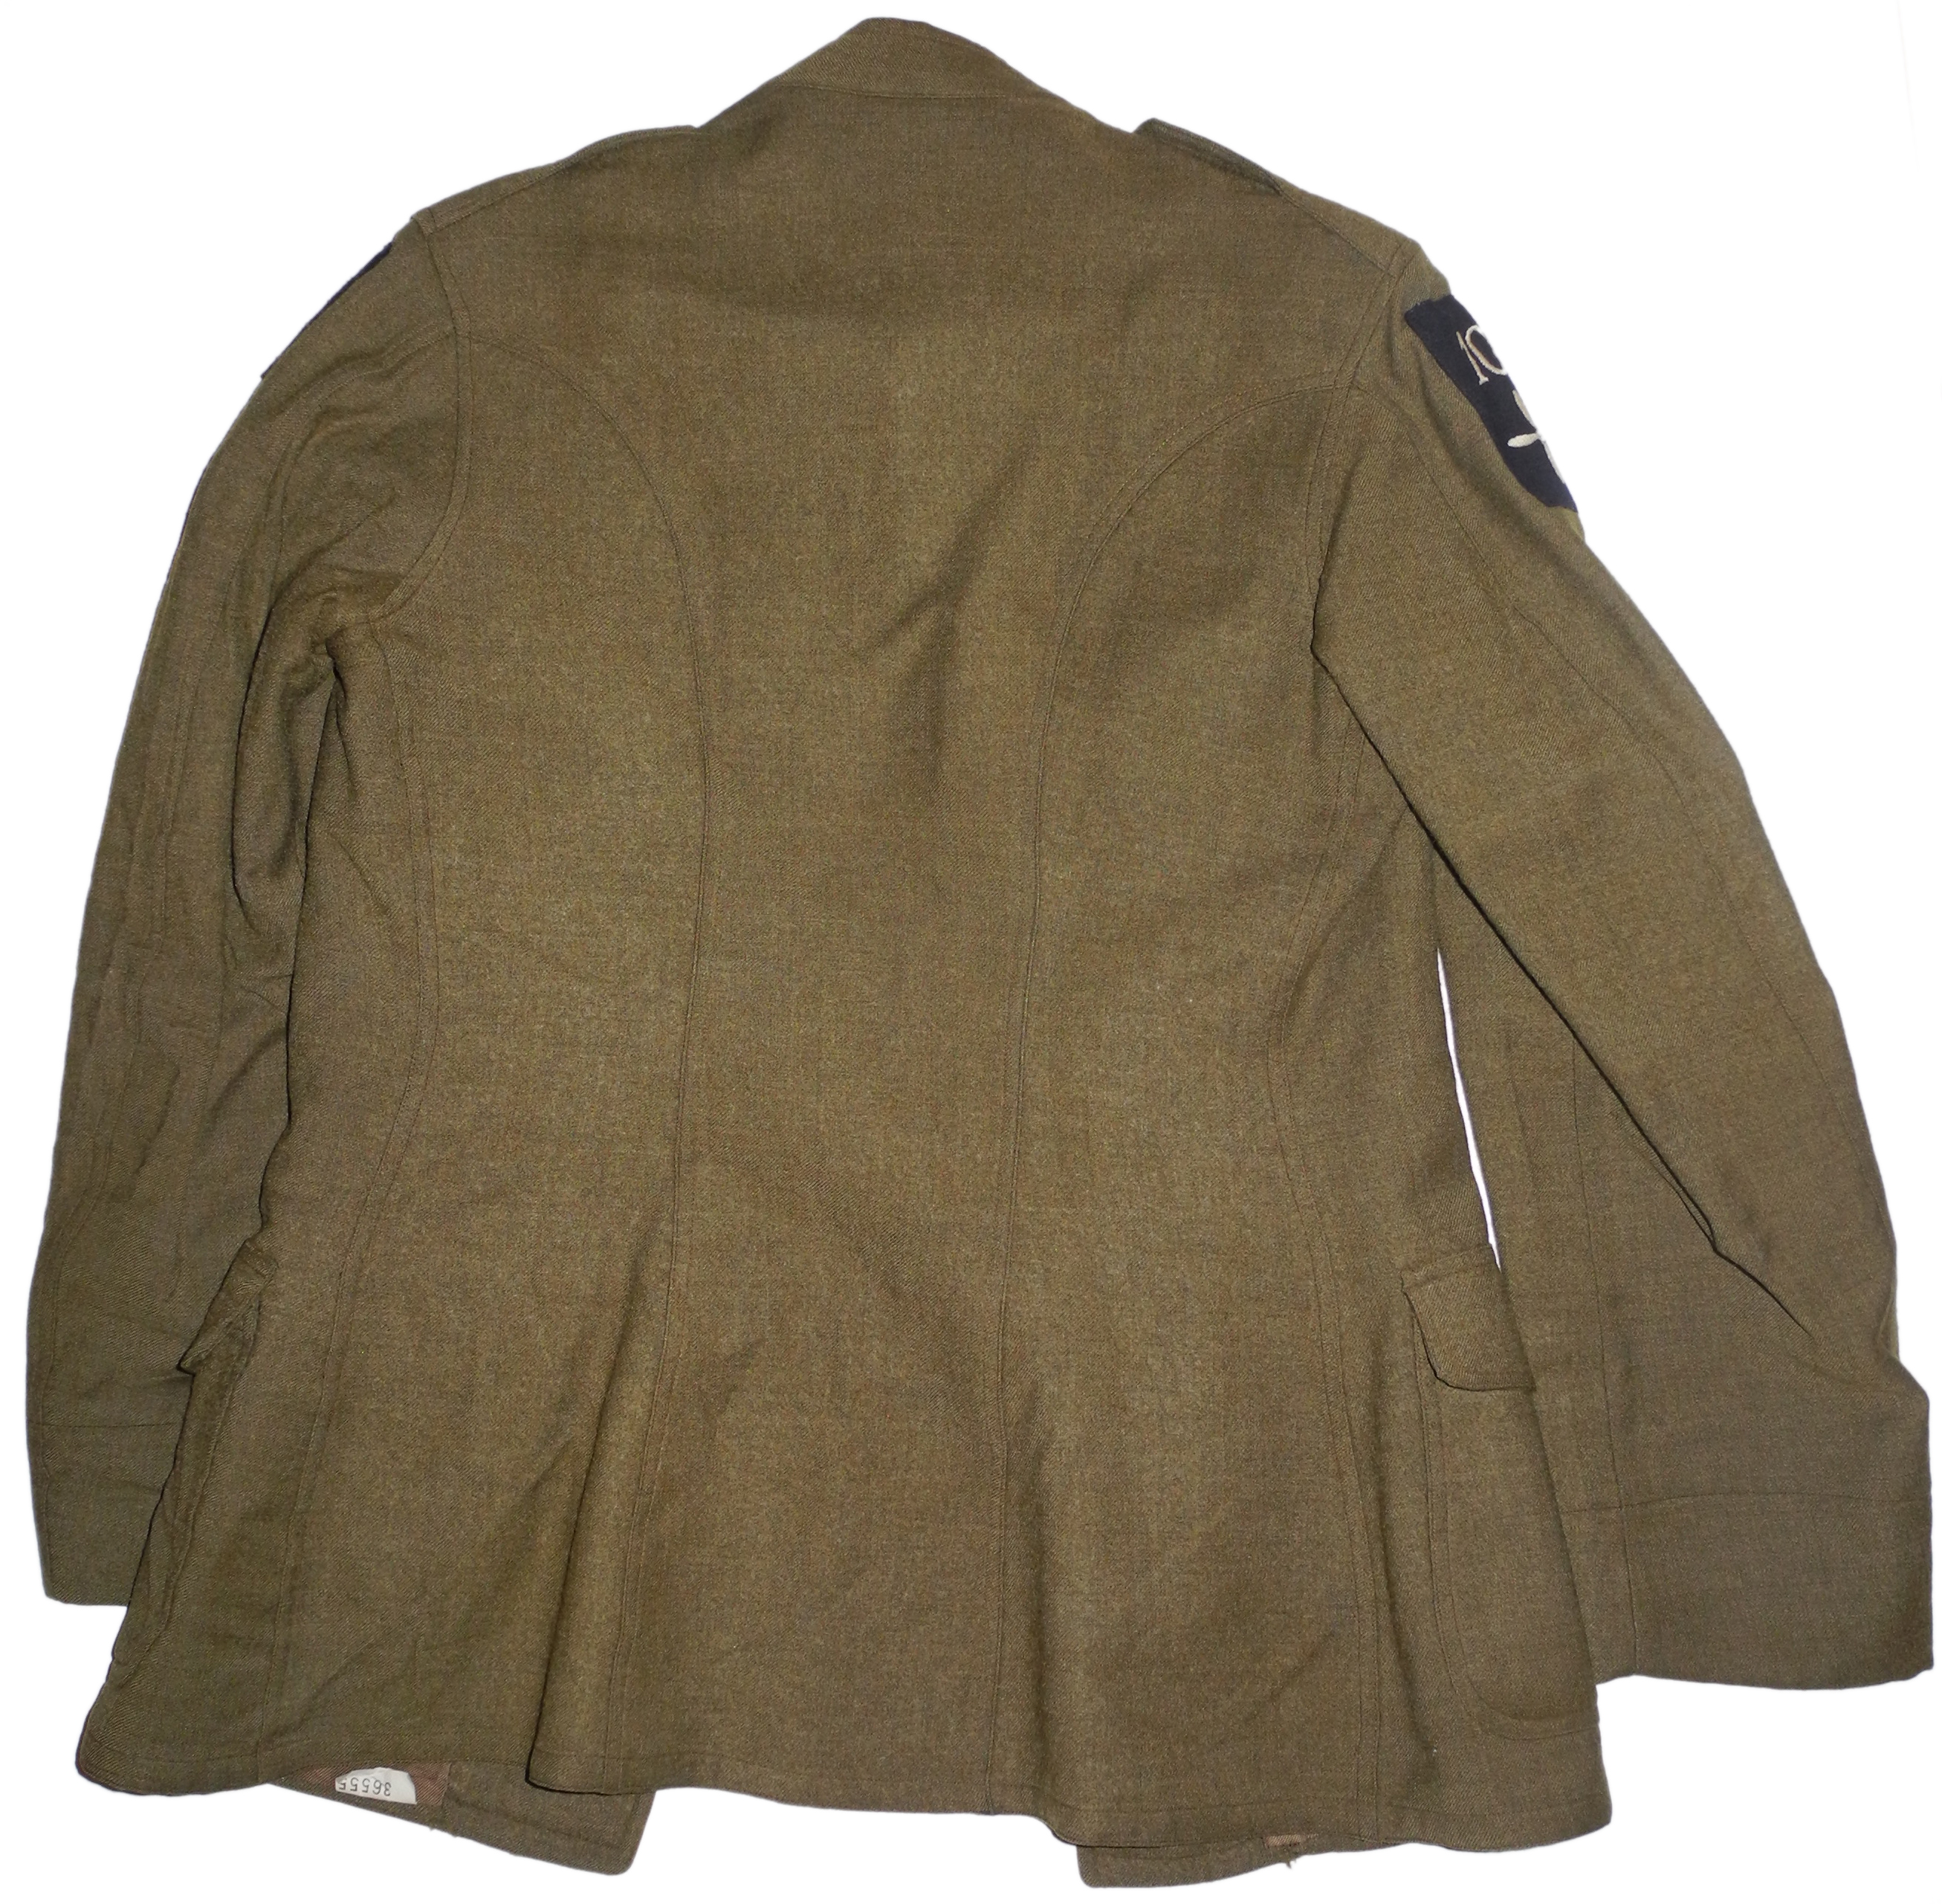 WWI US Air Service sergeant's tunic708